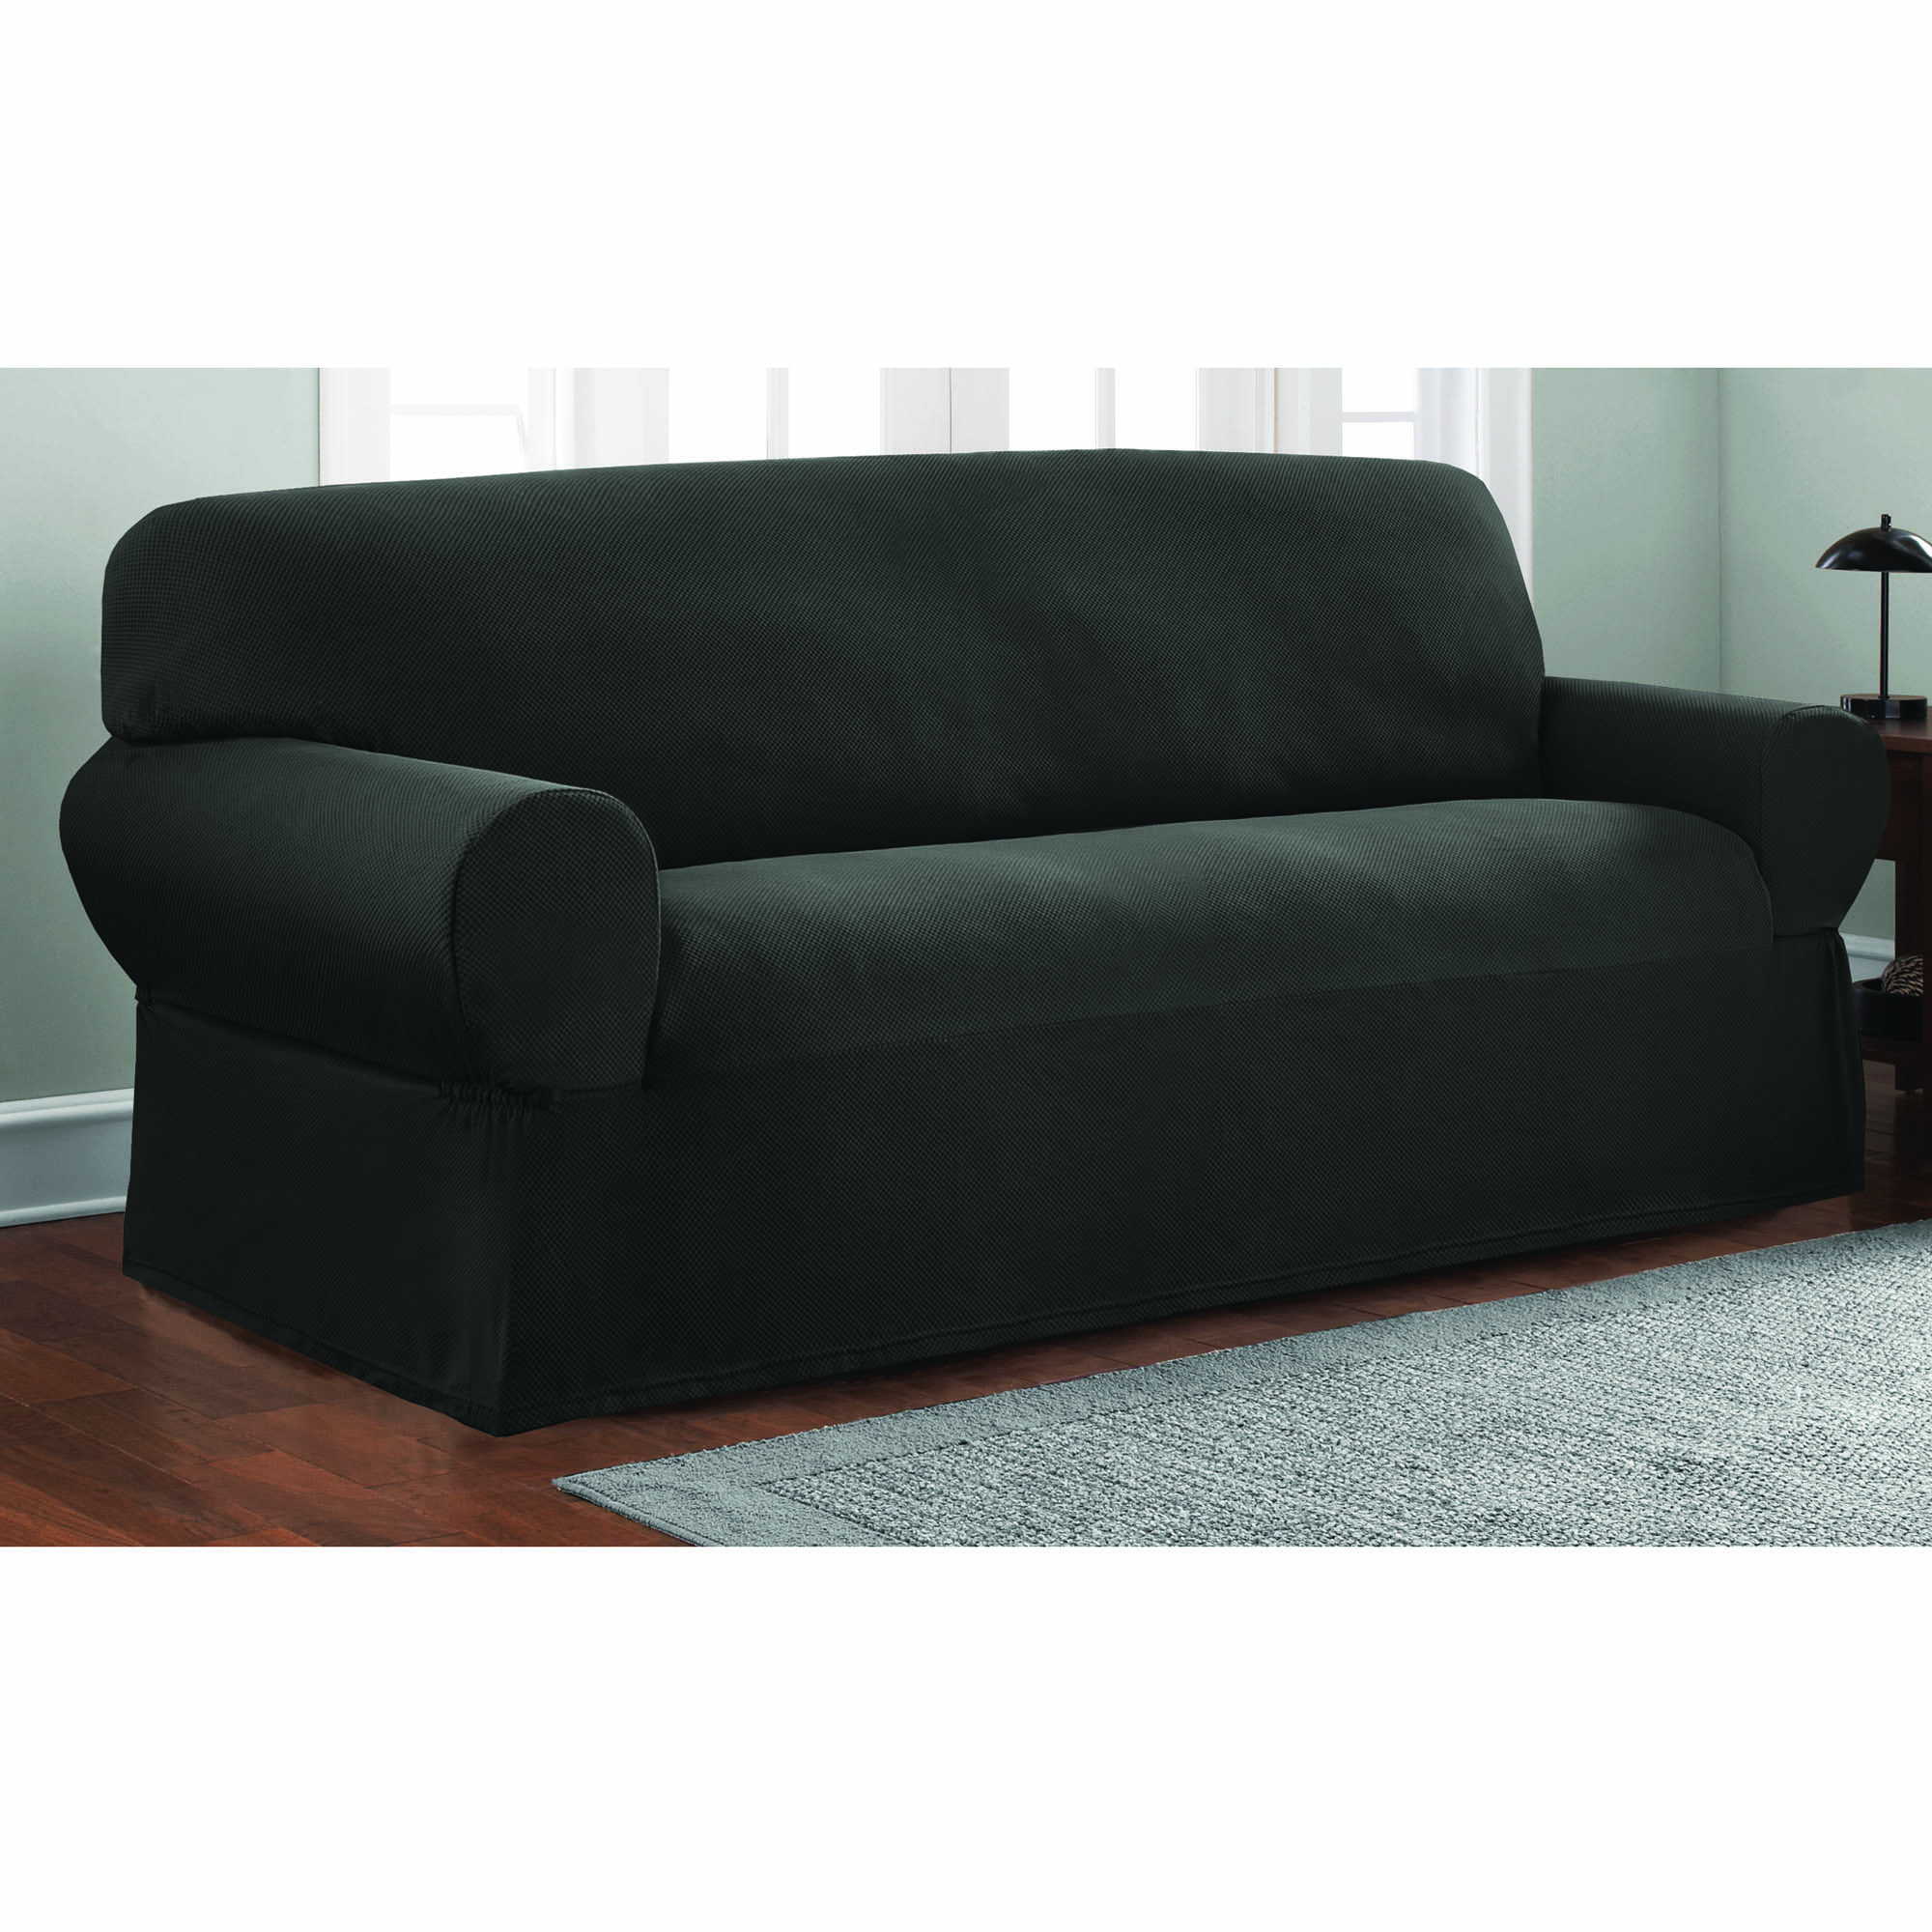 Mainstays 1 Piece Stretch Fabric Sofa Slipcover